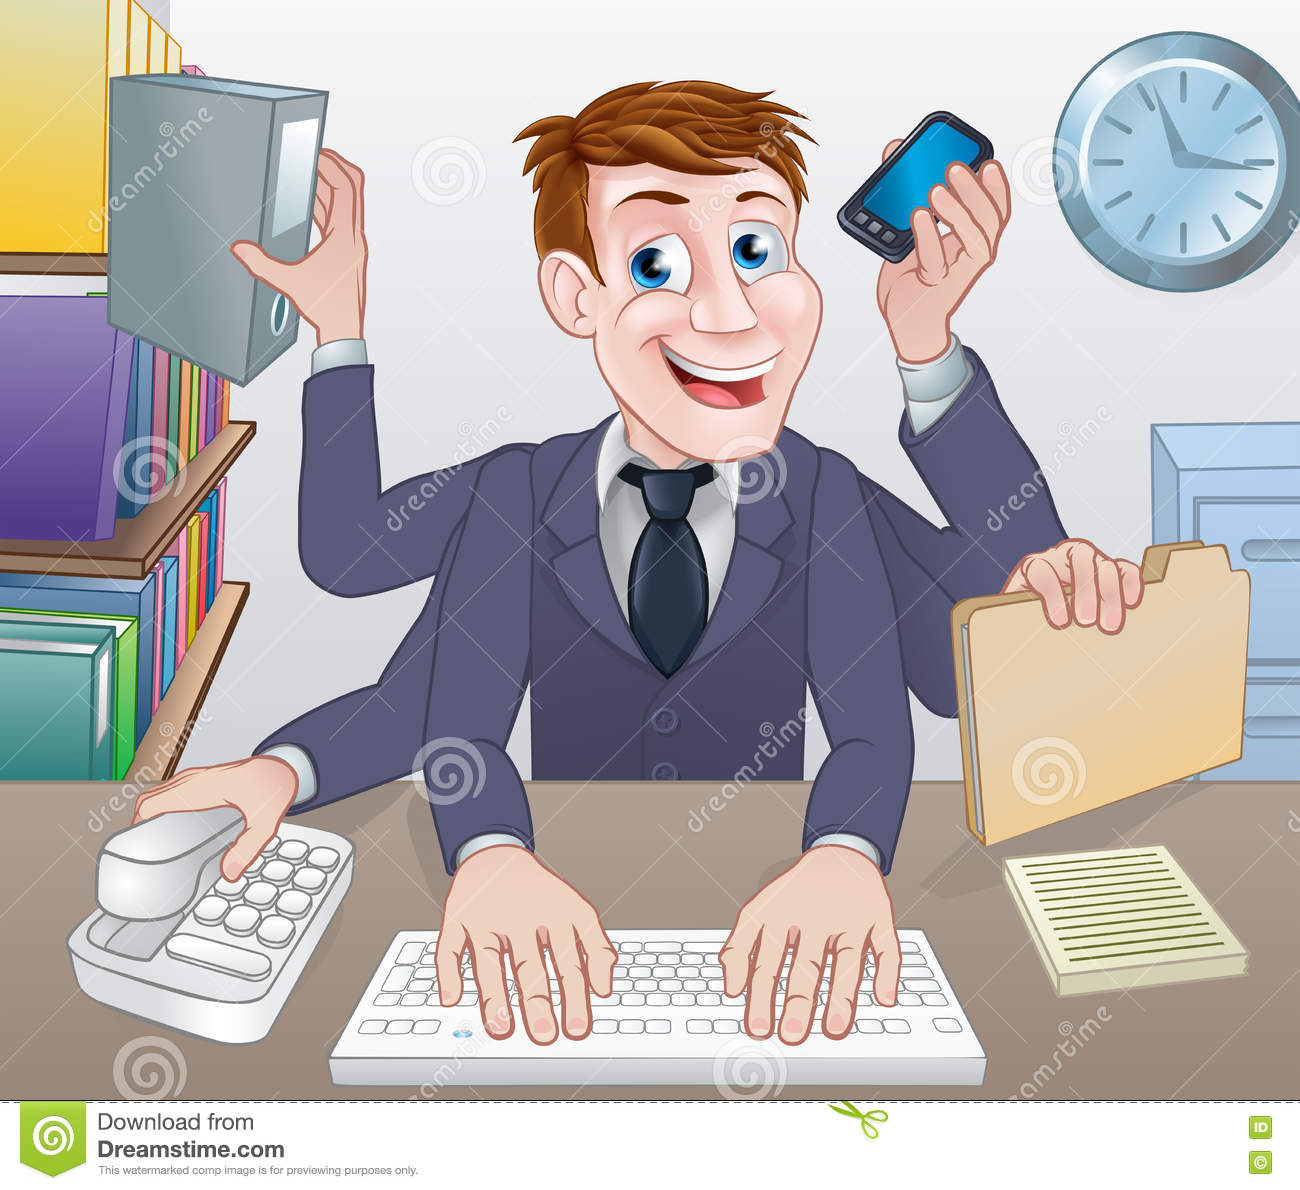 Multitasking Business Man Cartoon Stock Vector - Image ...